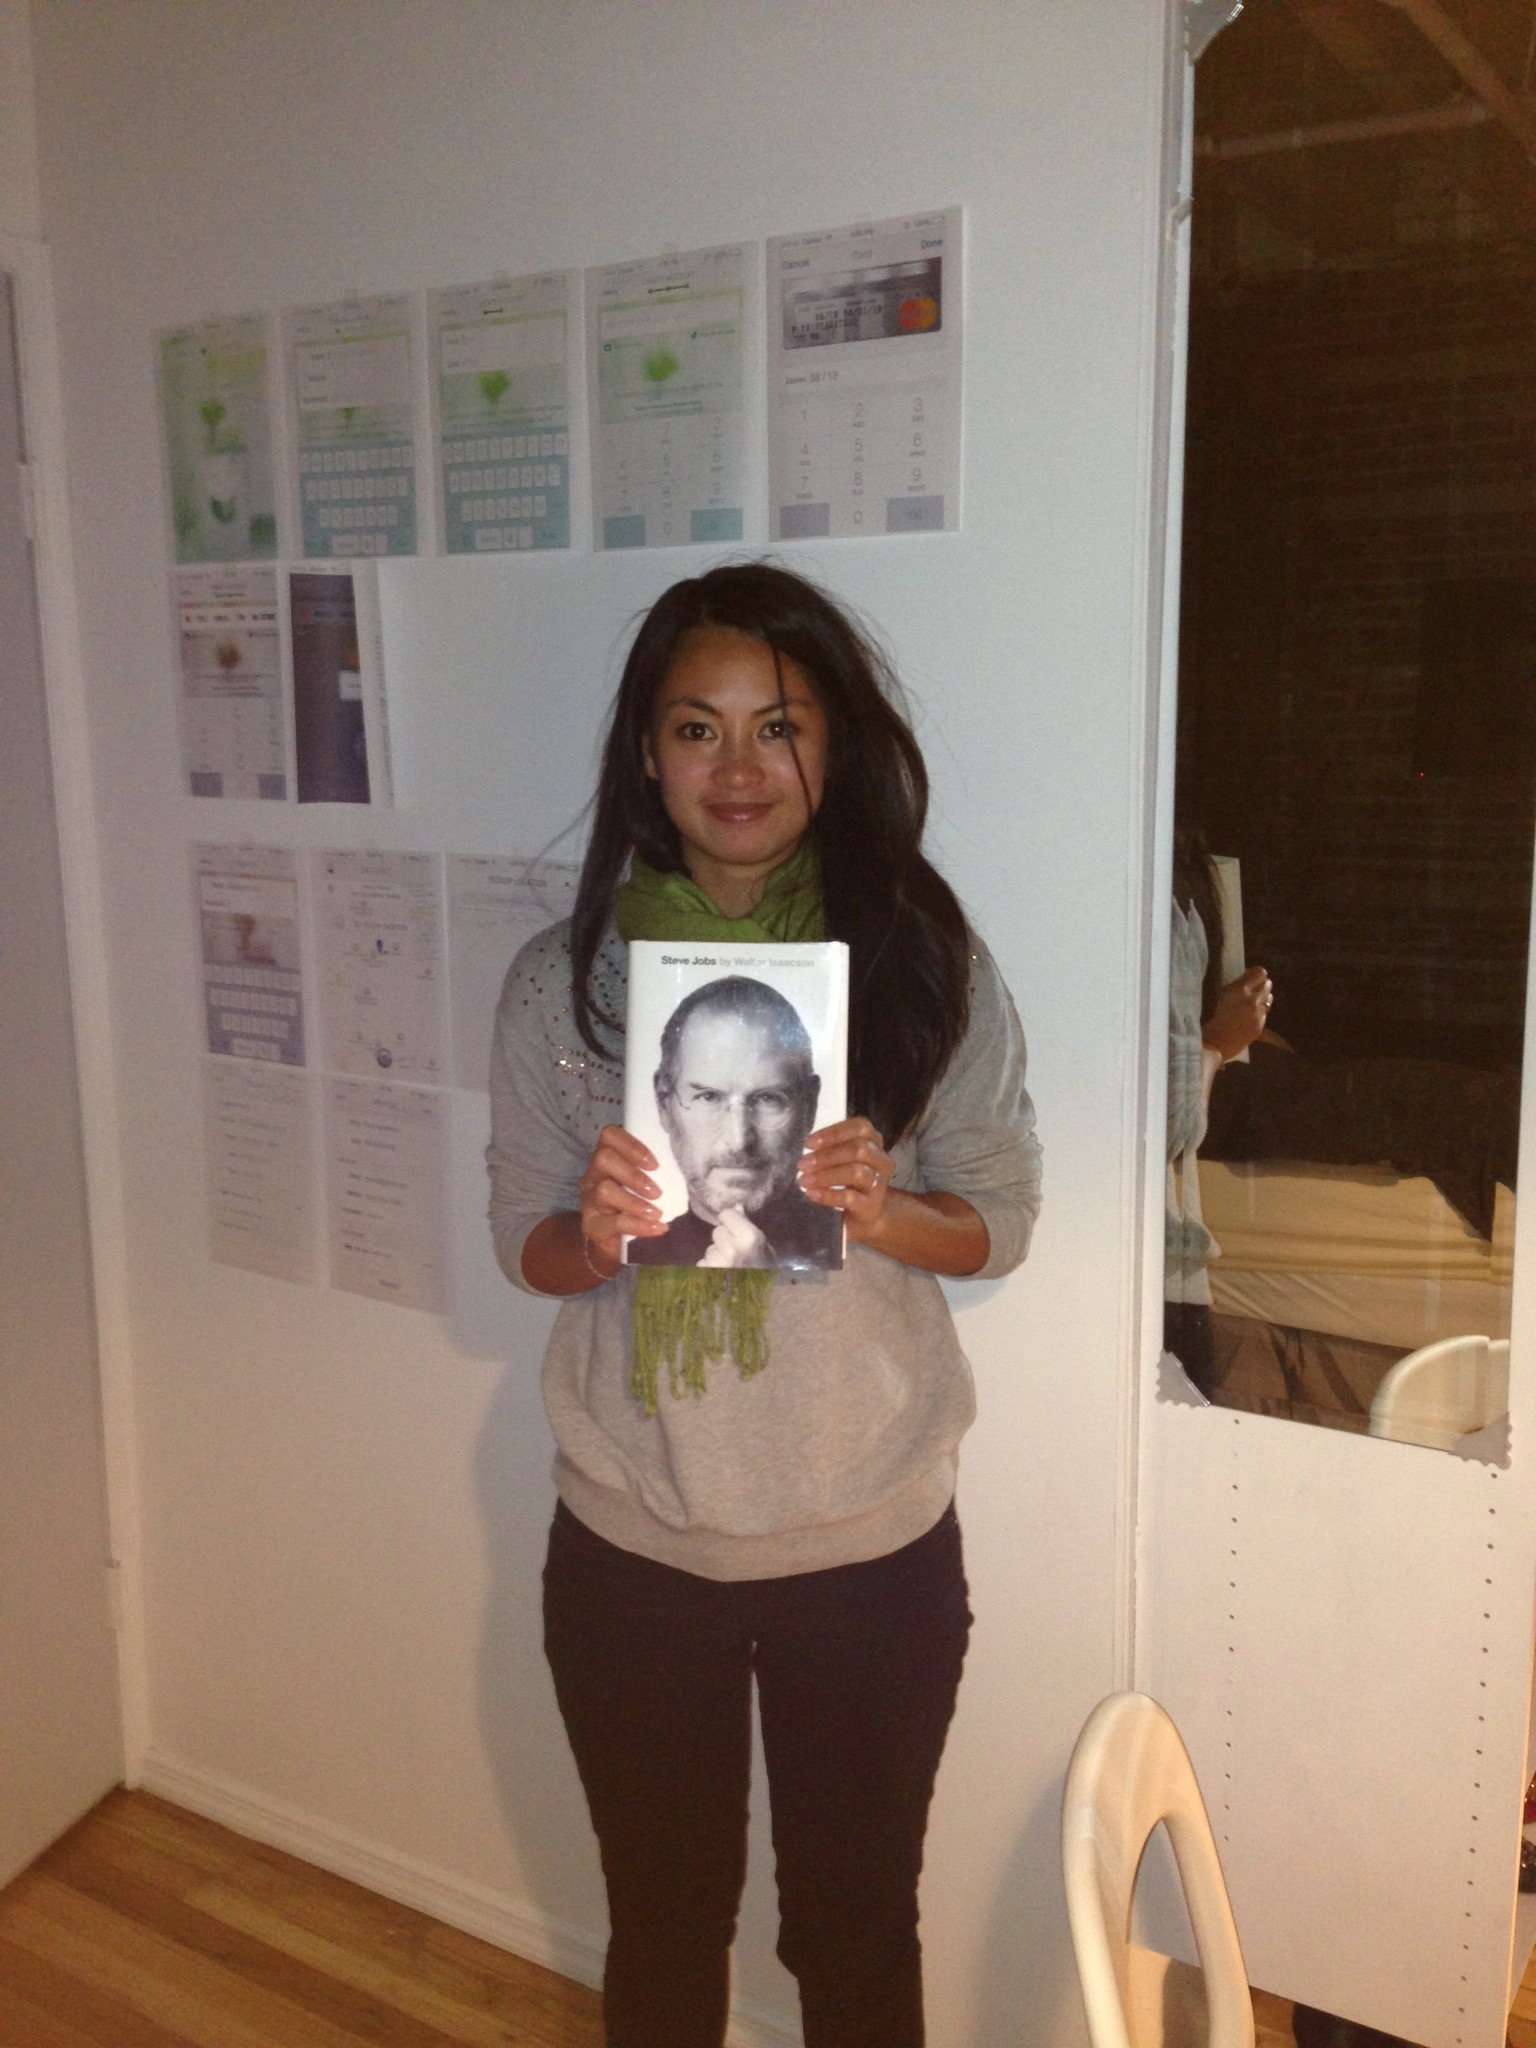 taken on Oct. 23, 2013   This is me holding up the Steve Jobs biography. I read it 3 times, always imagining that he was my mentor. You can see initial screenshots of the first version of the app behind me.